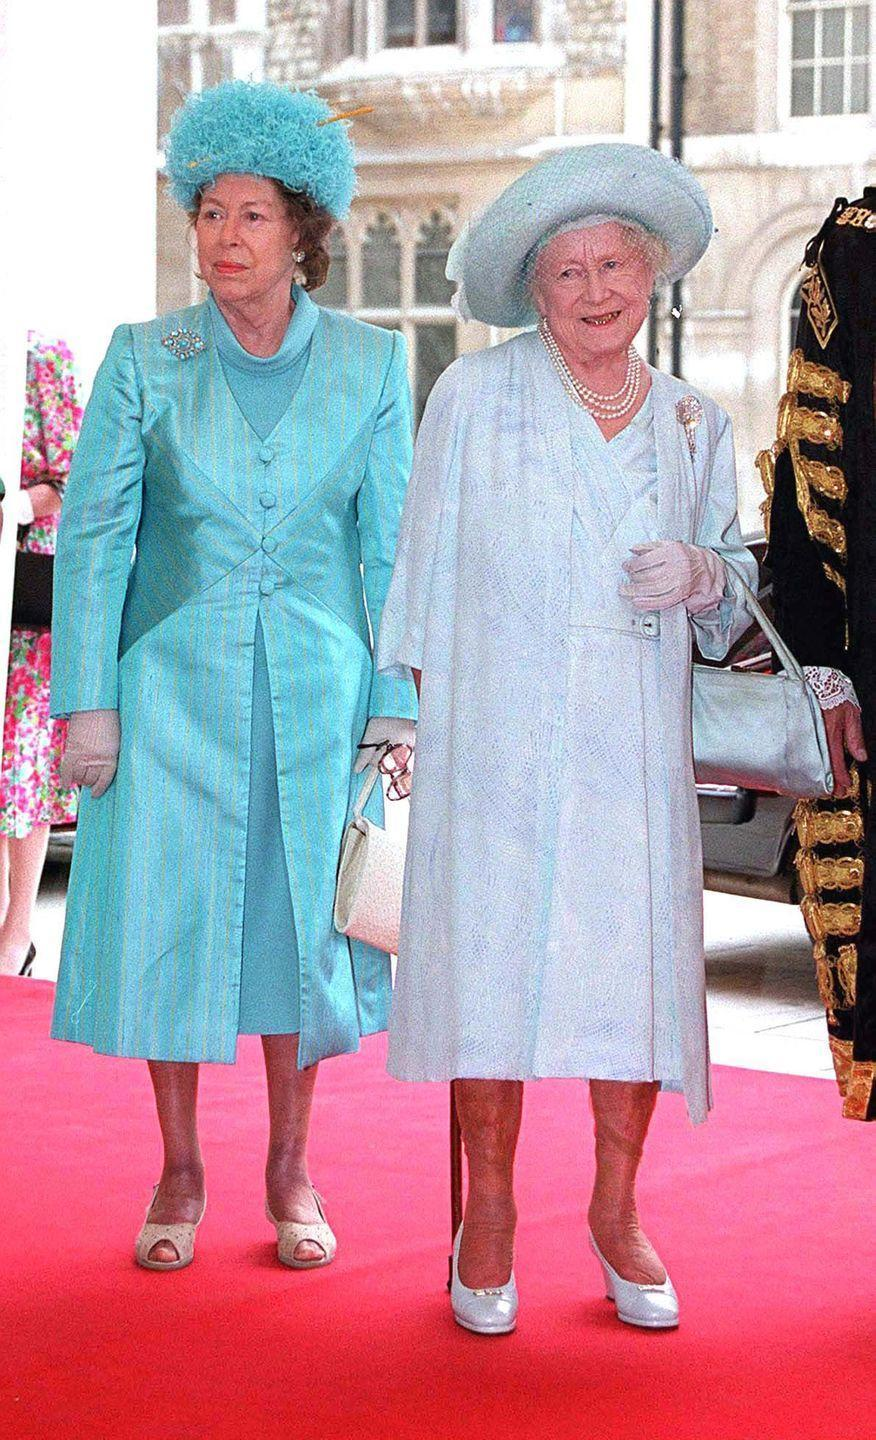 <p>The Queen Mother and Princess Margaret at a luncheon in honor of Elizabeth's 100th birthday. Margaret's mother died on March 30, 2002, one month after Margaret died that same year. </p>